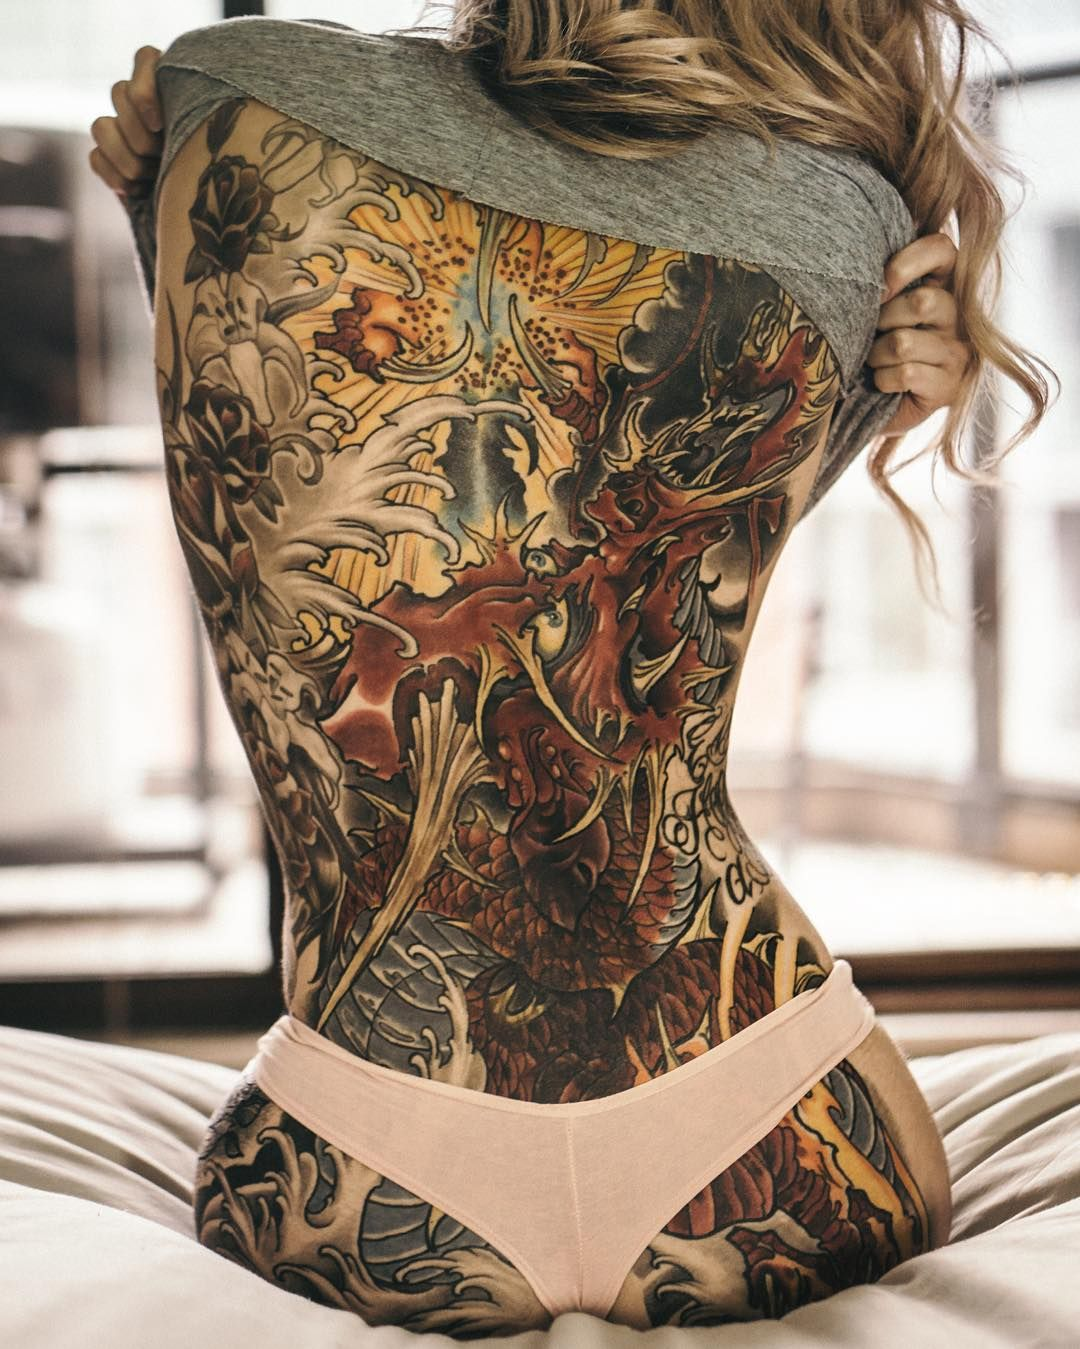 Awesome Dragon Back Full Tattoo For Girl Tattoo Pinterest